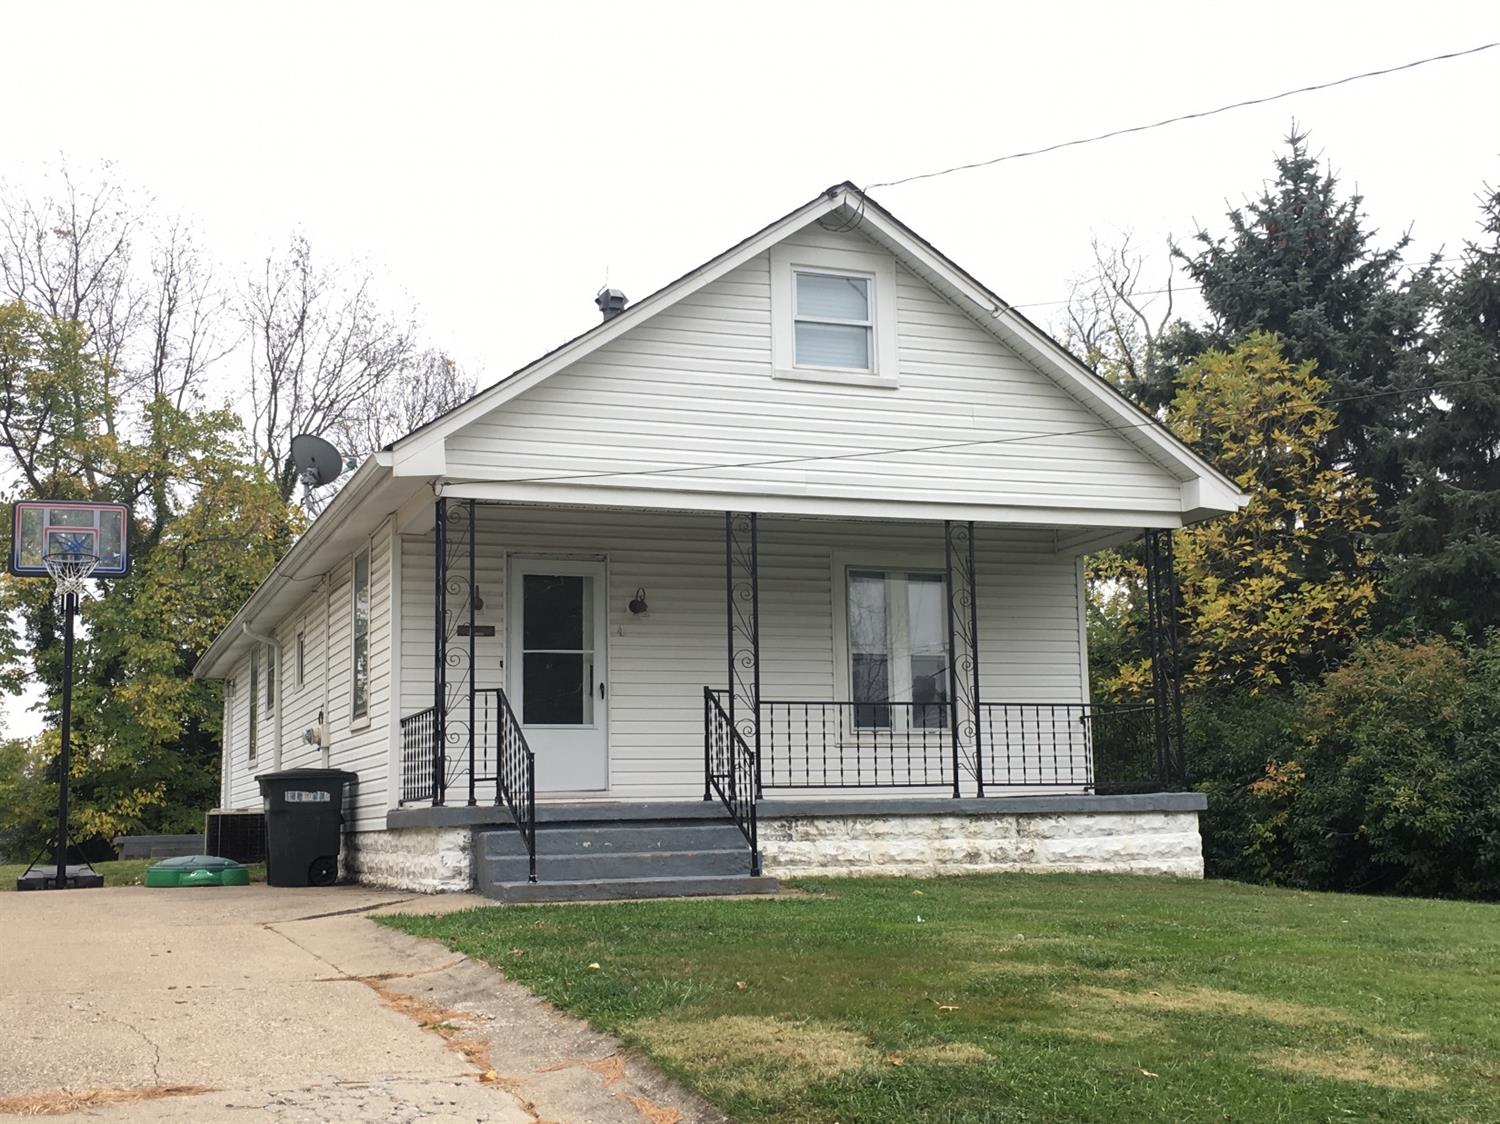 4 Ross Ave, Fort Mitchell, KY 41017